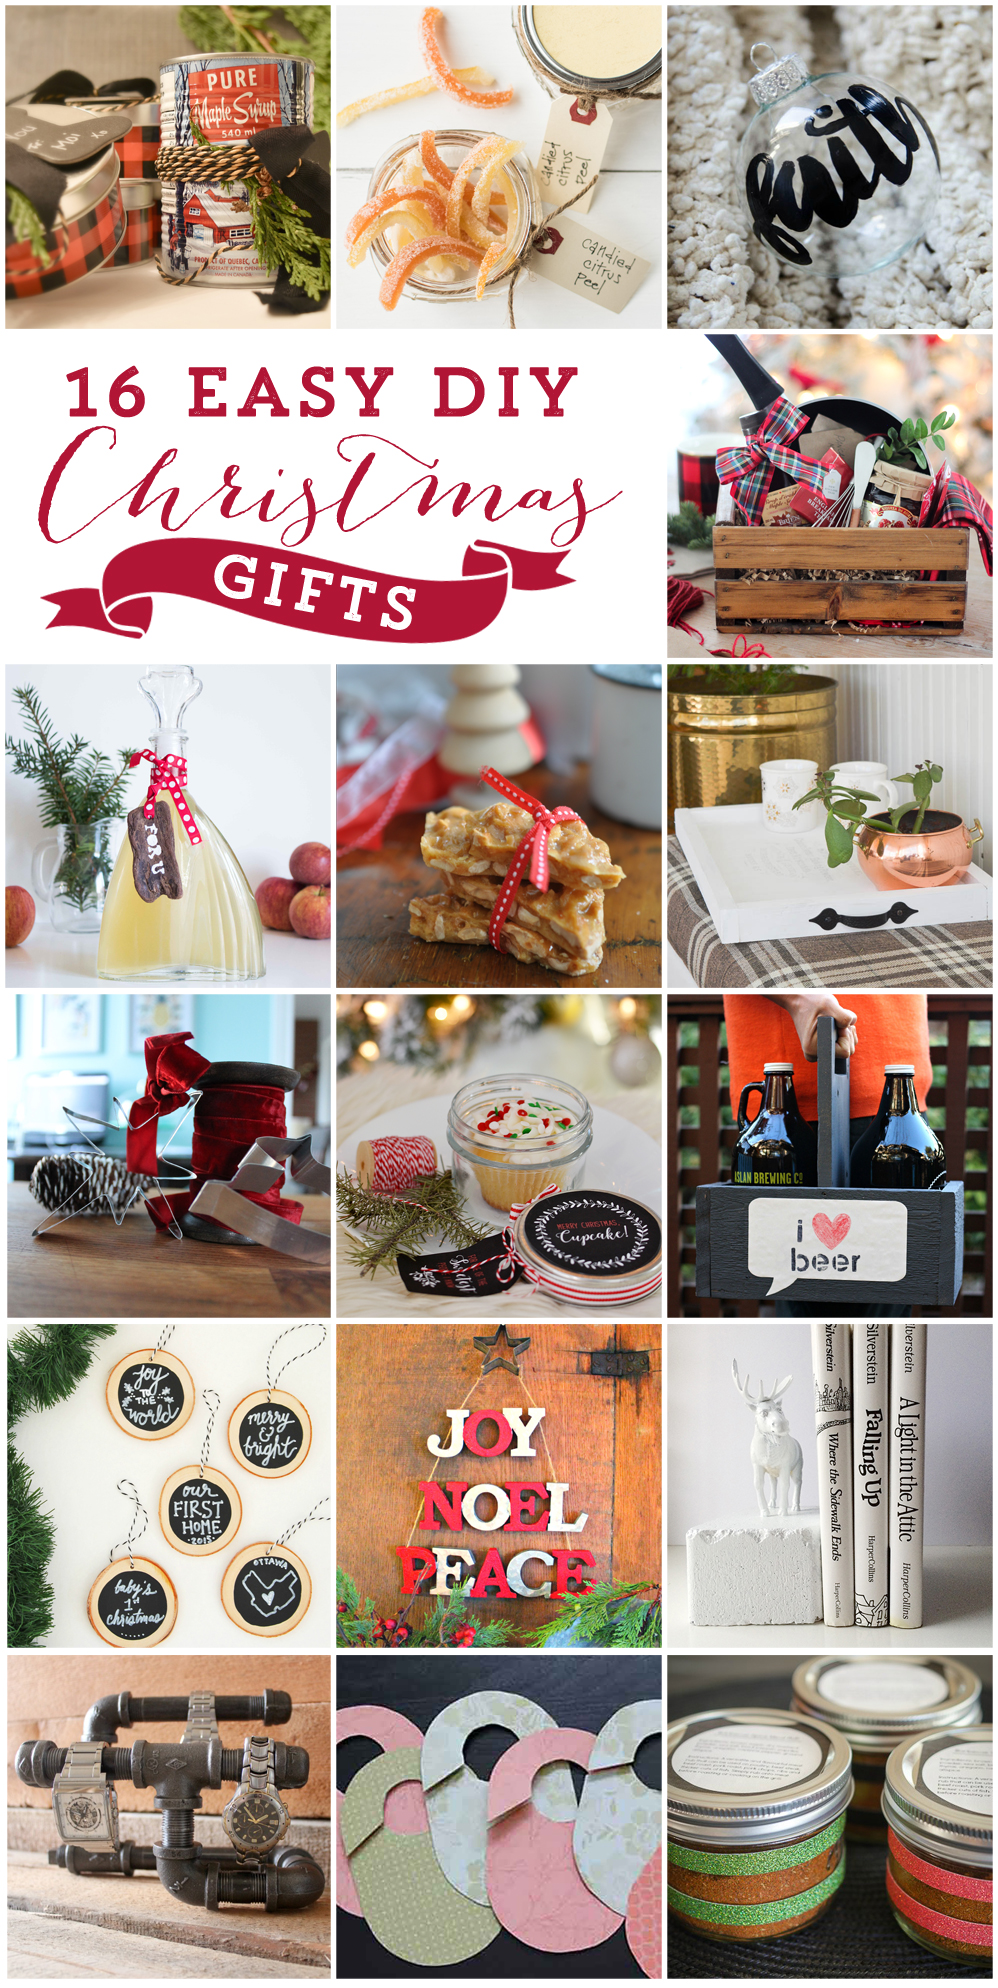 16 Easy & Beautiful DIY Christmas Gifts to Make